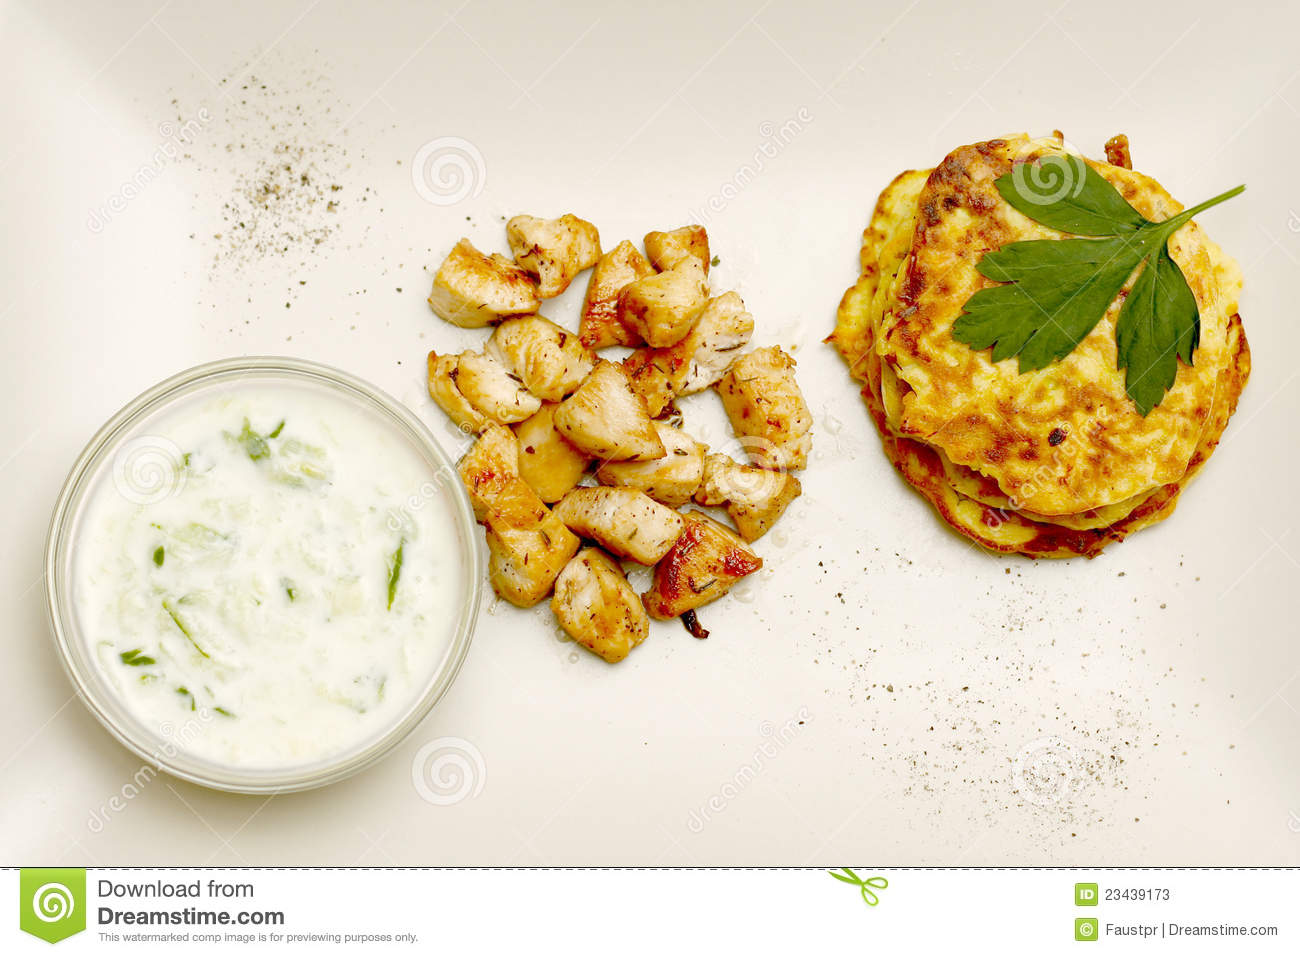 Zucchini Croquettes With Chicken Stock Photos - Image: 23439173